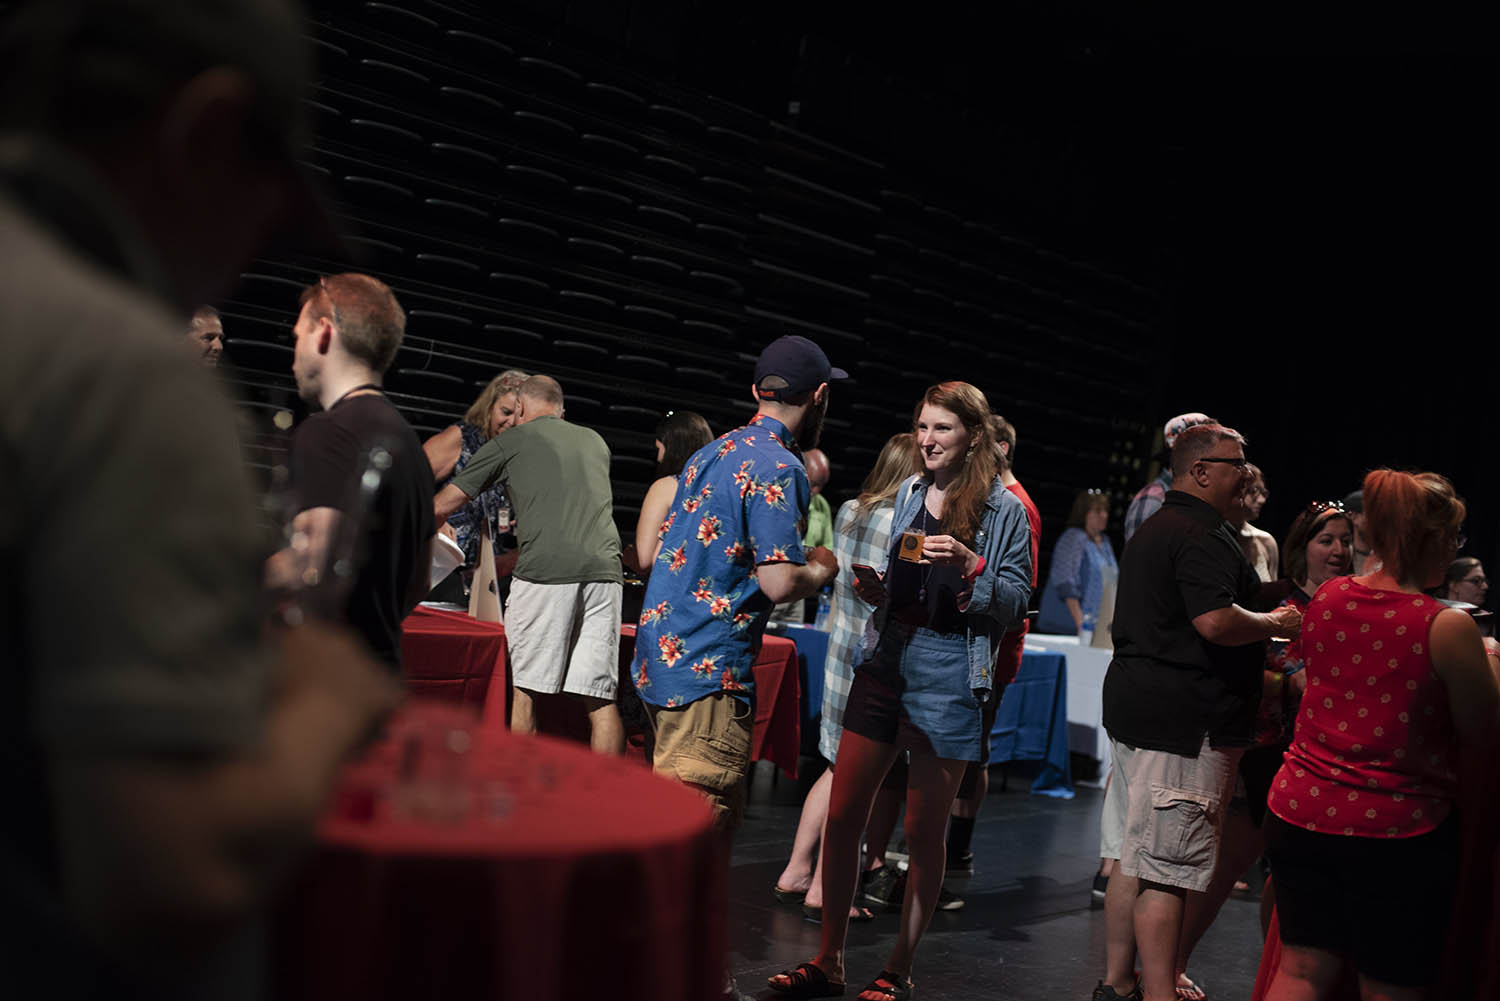 Patrons sample beer and cider during Red, White & Brew at Proctors Friday, June 30, 2018.